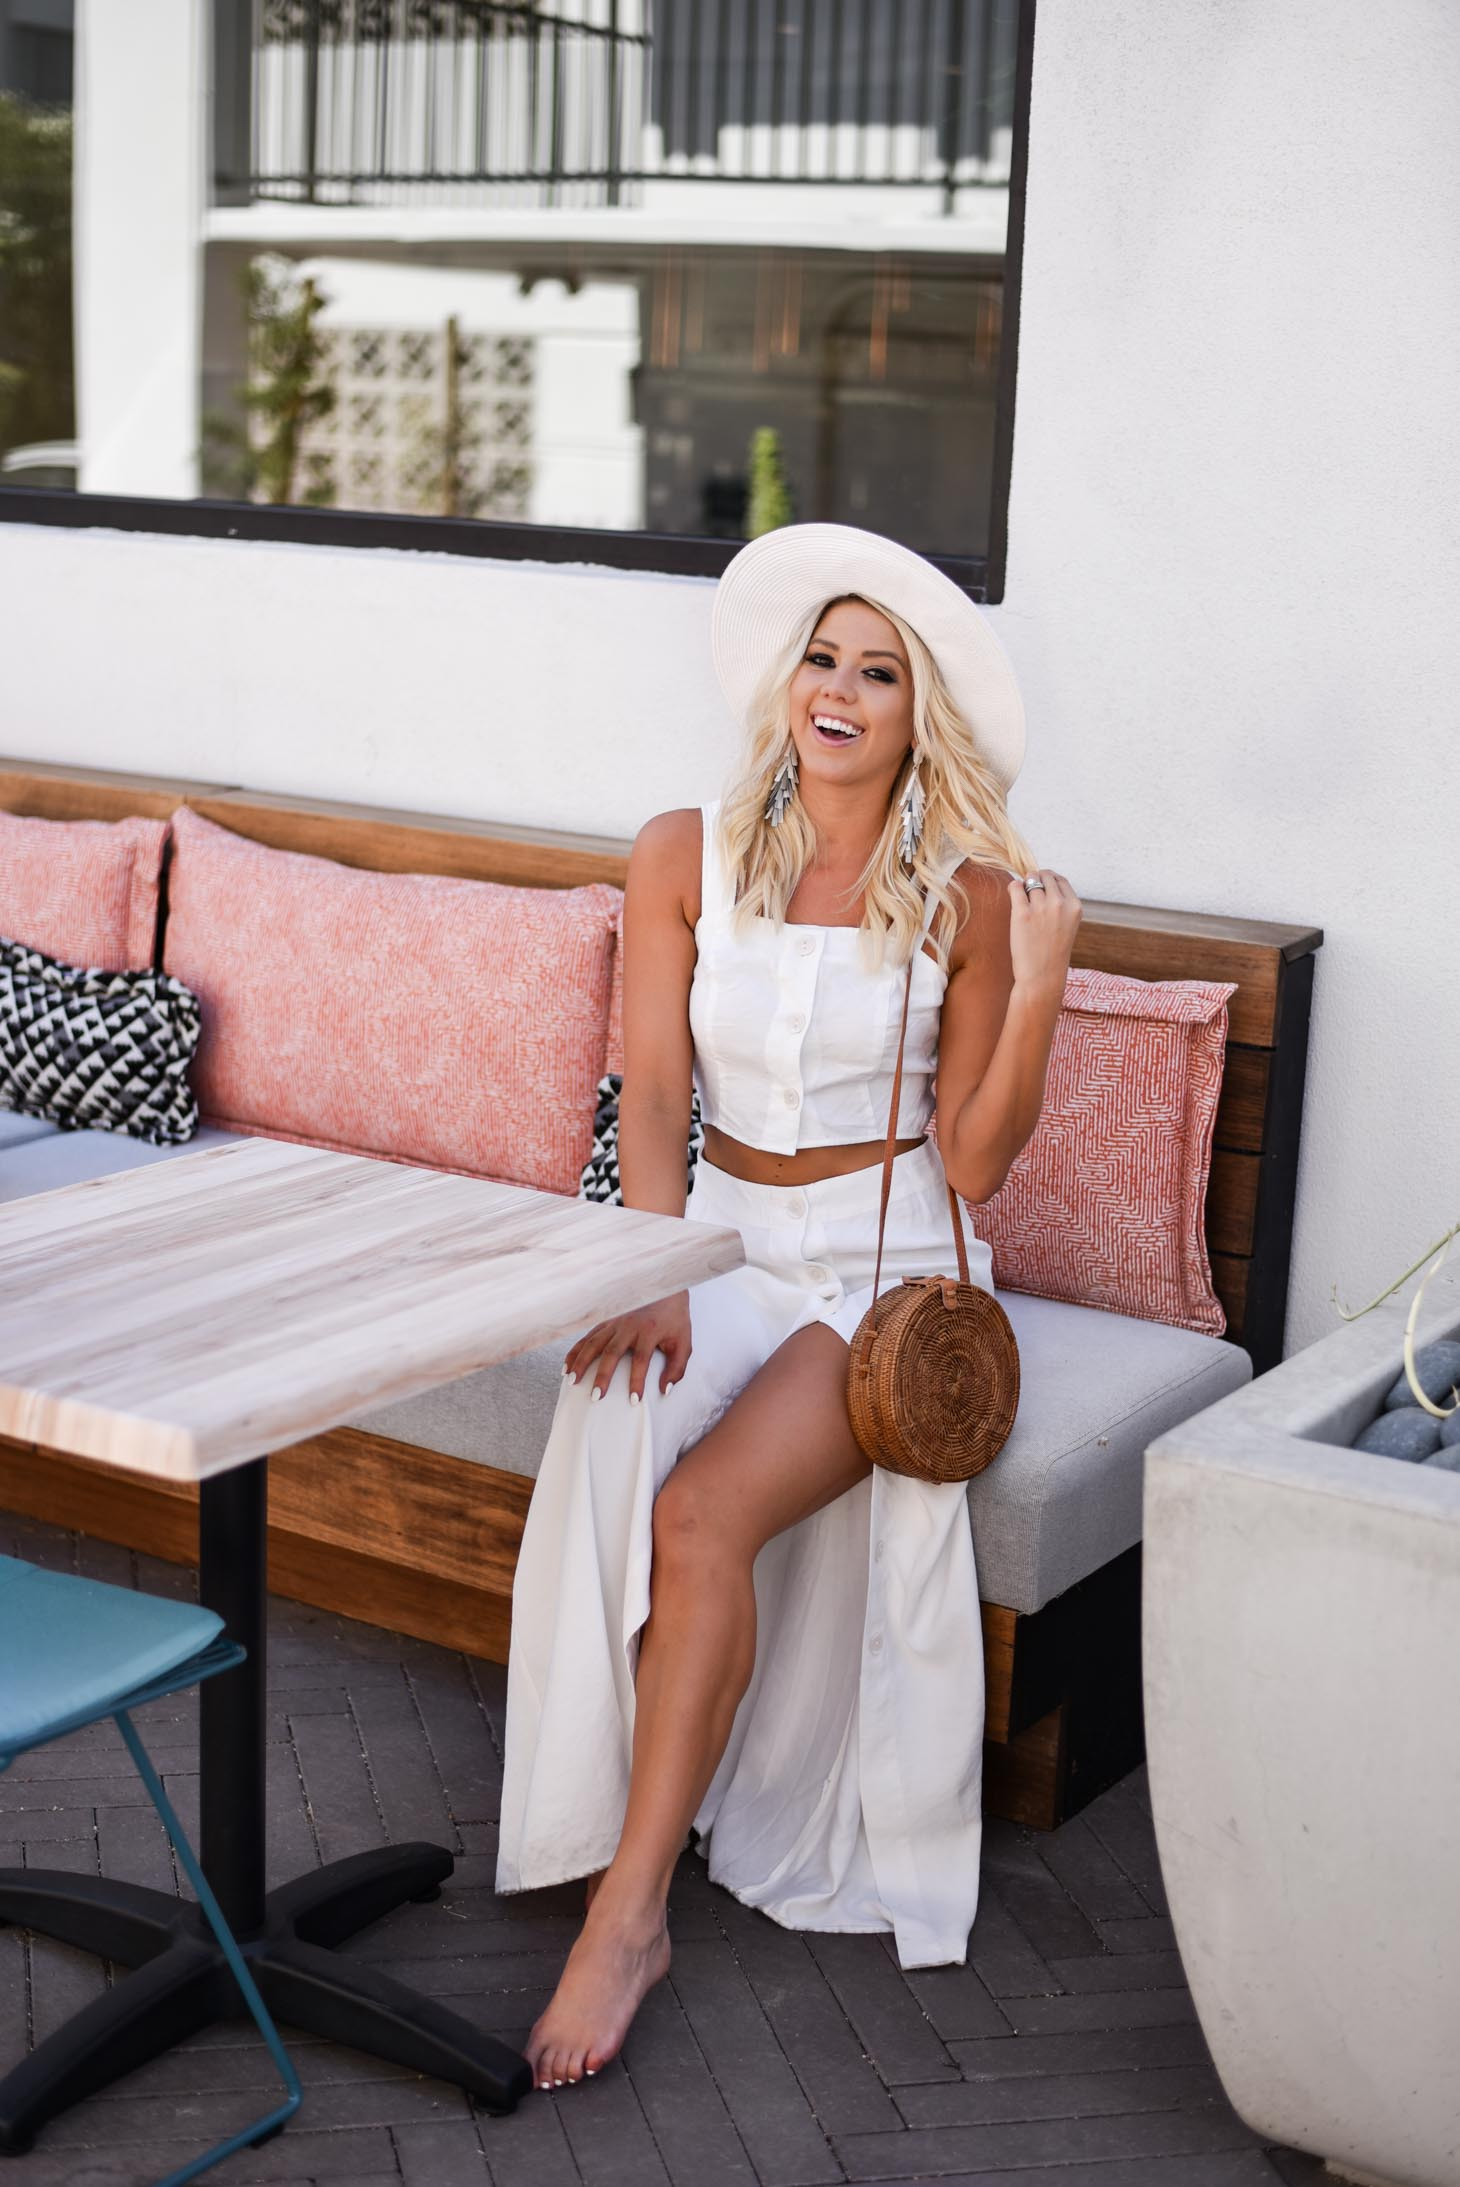 Erin Elizabeth of Wink and a Twirl shares the cutest two piece set from Emmer and Oat at her recent staycation at the Hotel Adeline in Scottsdale, Arizona